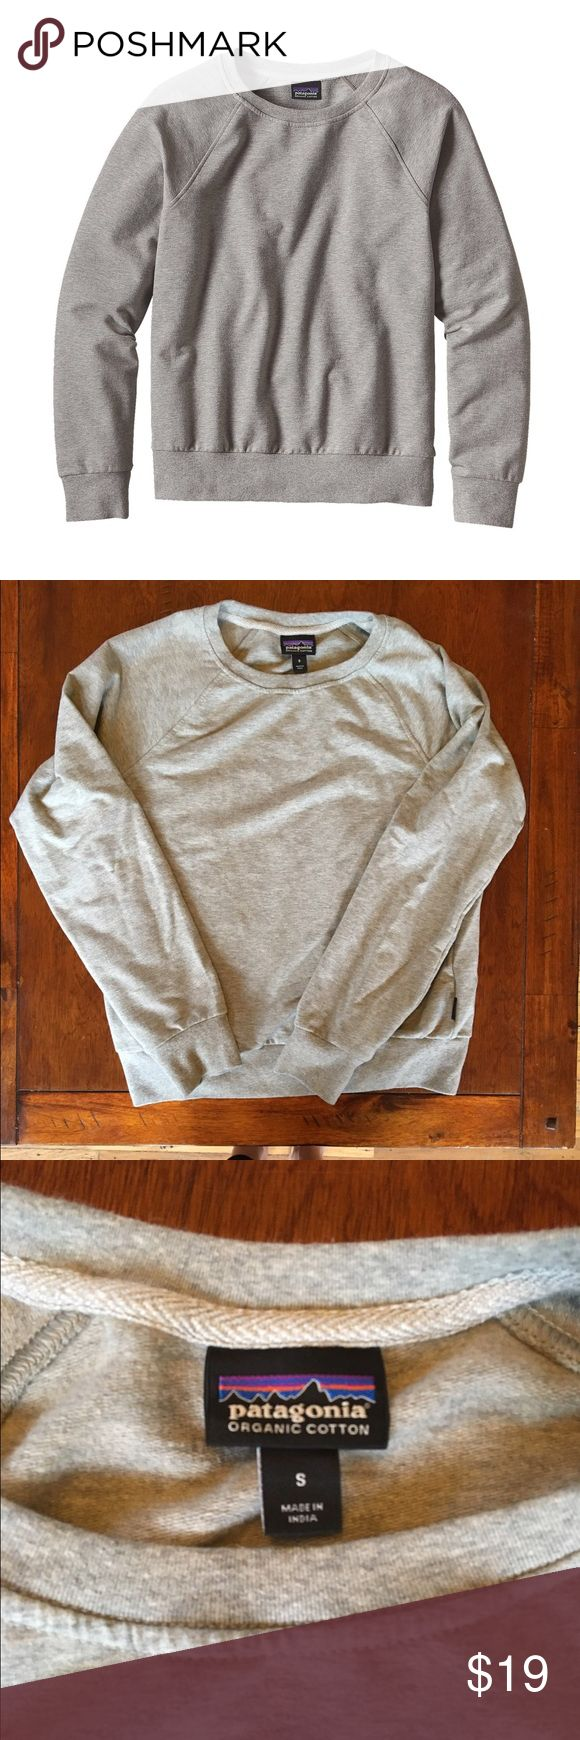 Patagonia Ahnya crew sweatshirt - grey - small Made with soft organic cotton and polyester fleece with a touch of spandex for movement. Crew neck with raglan sleeves and a classic fit. Waist length. Worn &I washed once, it's just a little too short on me (comes to my waist but I like my sweatshirts longer). Original price is $59 but it's on sale for $29 on the website so I'm listing at $19 since it's like new. Patagonia Tops Sweatshirts & Hoodies